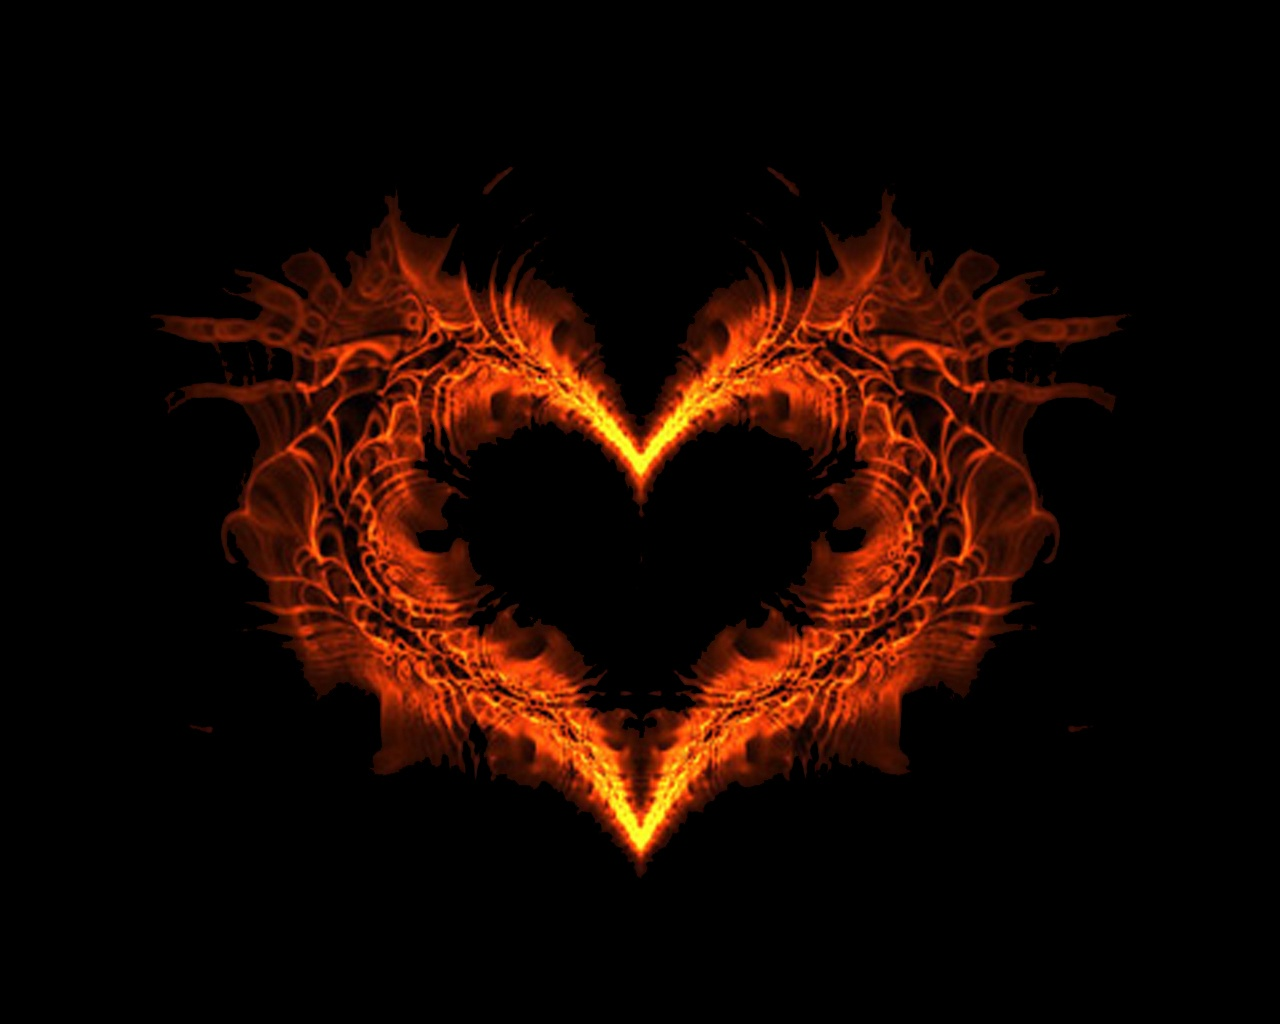 fire heart wallpaper